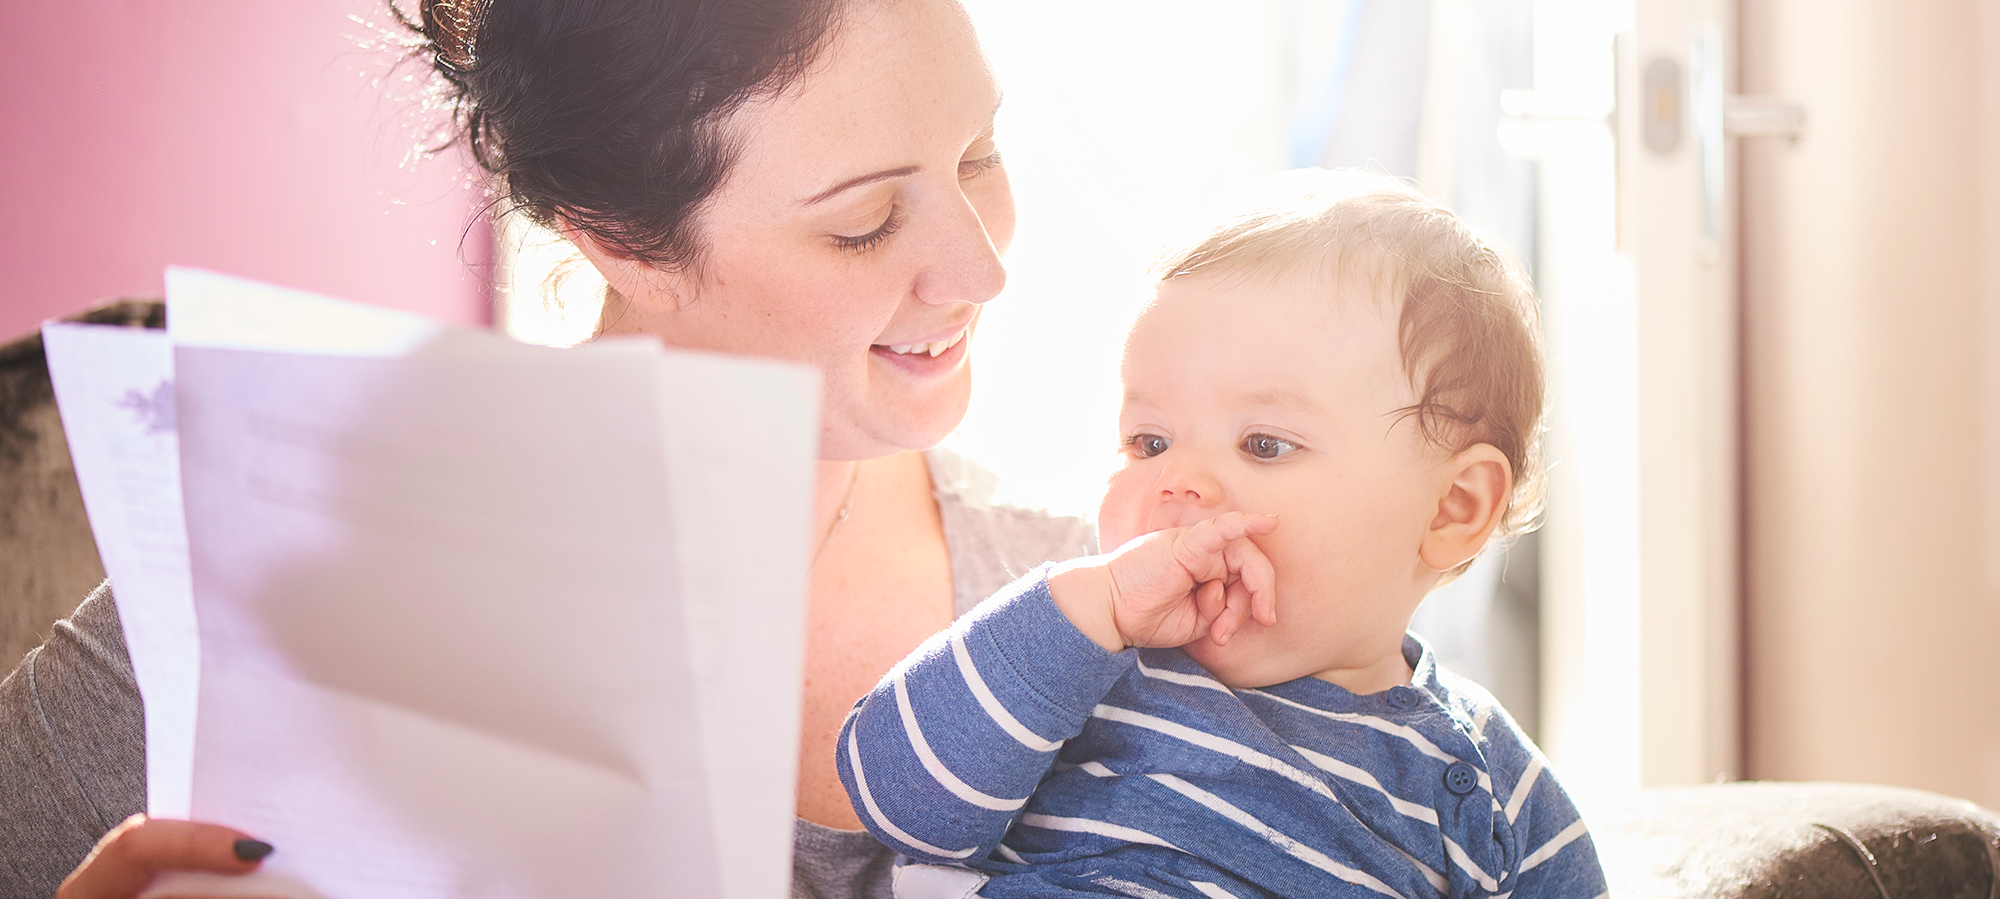 A woman smiling with at her baby while holding paers